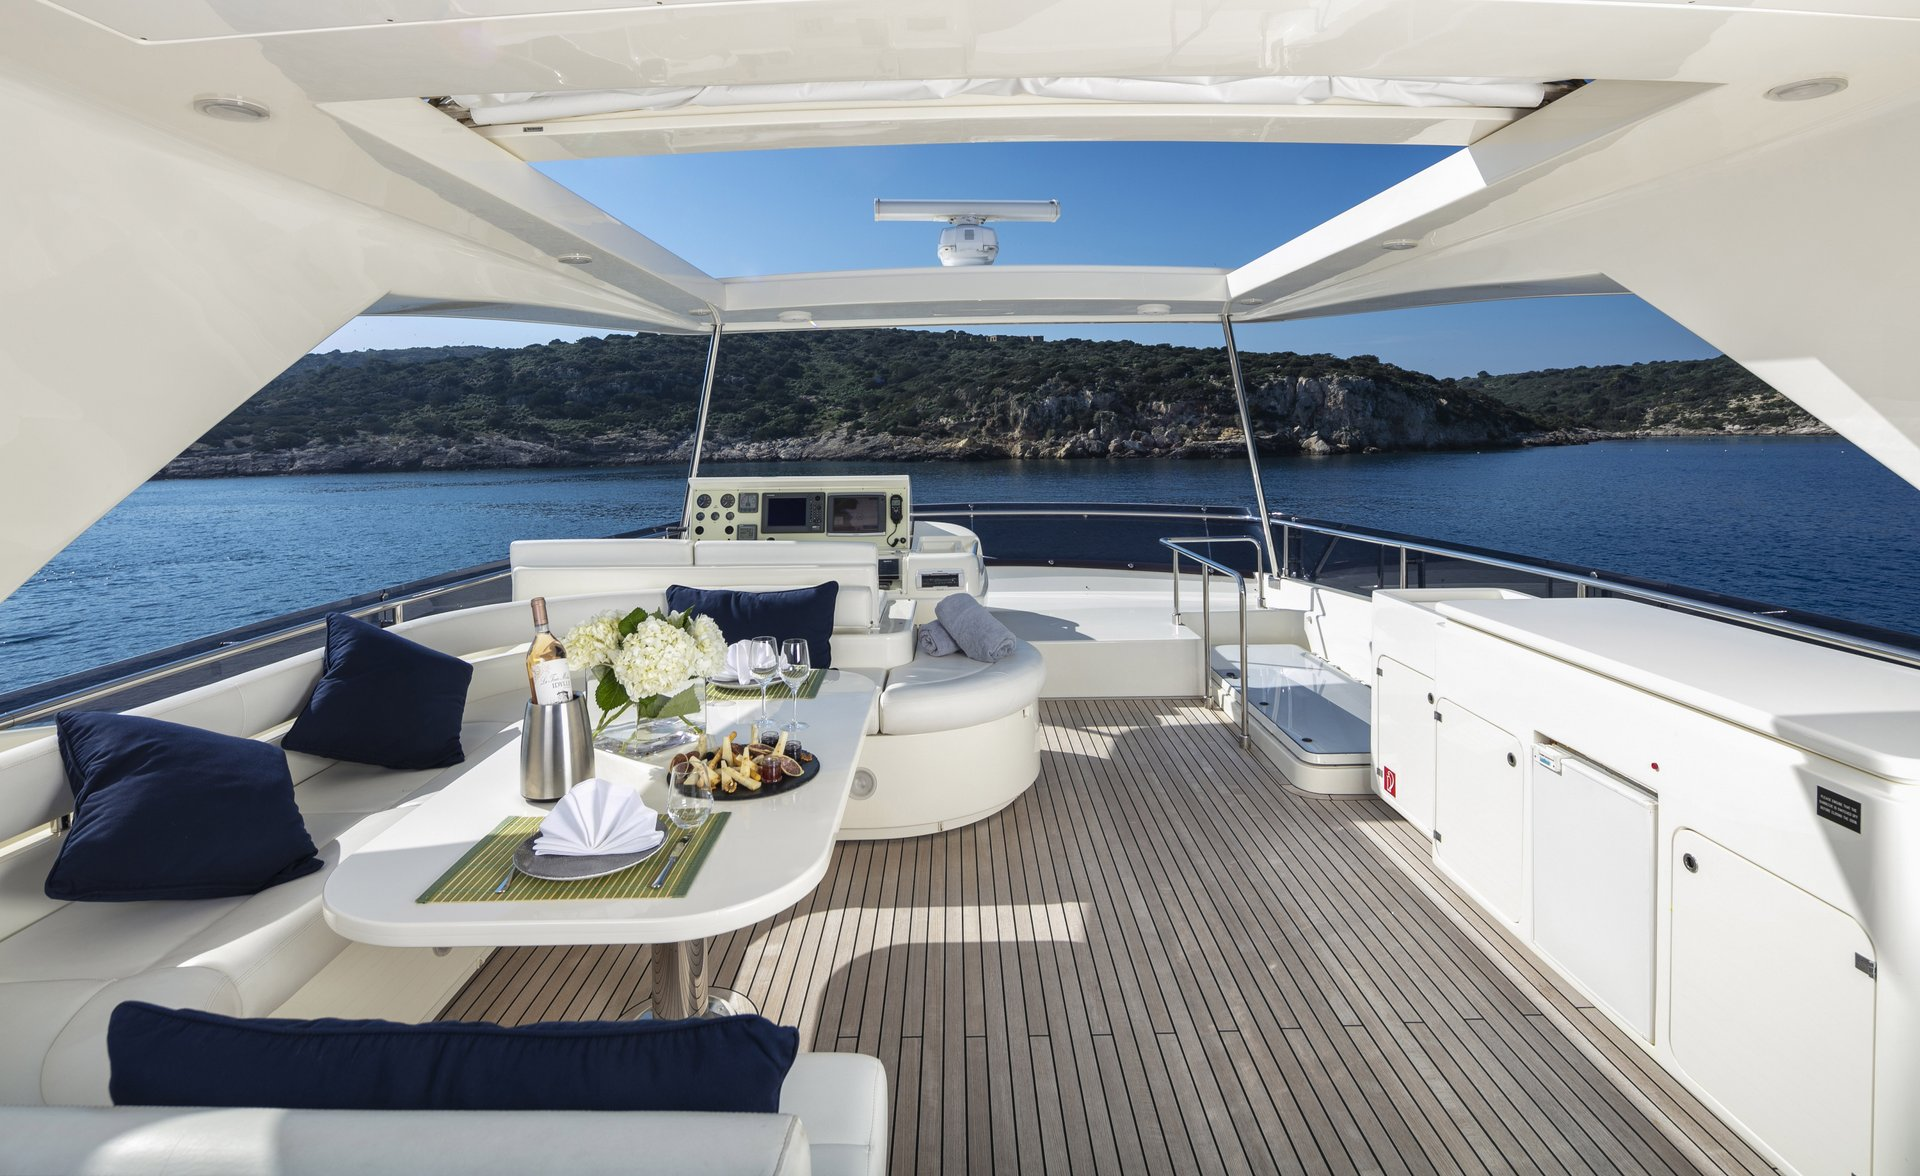 m/y astarte yacht for charter deck dining